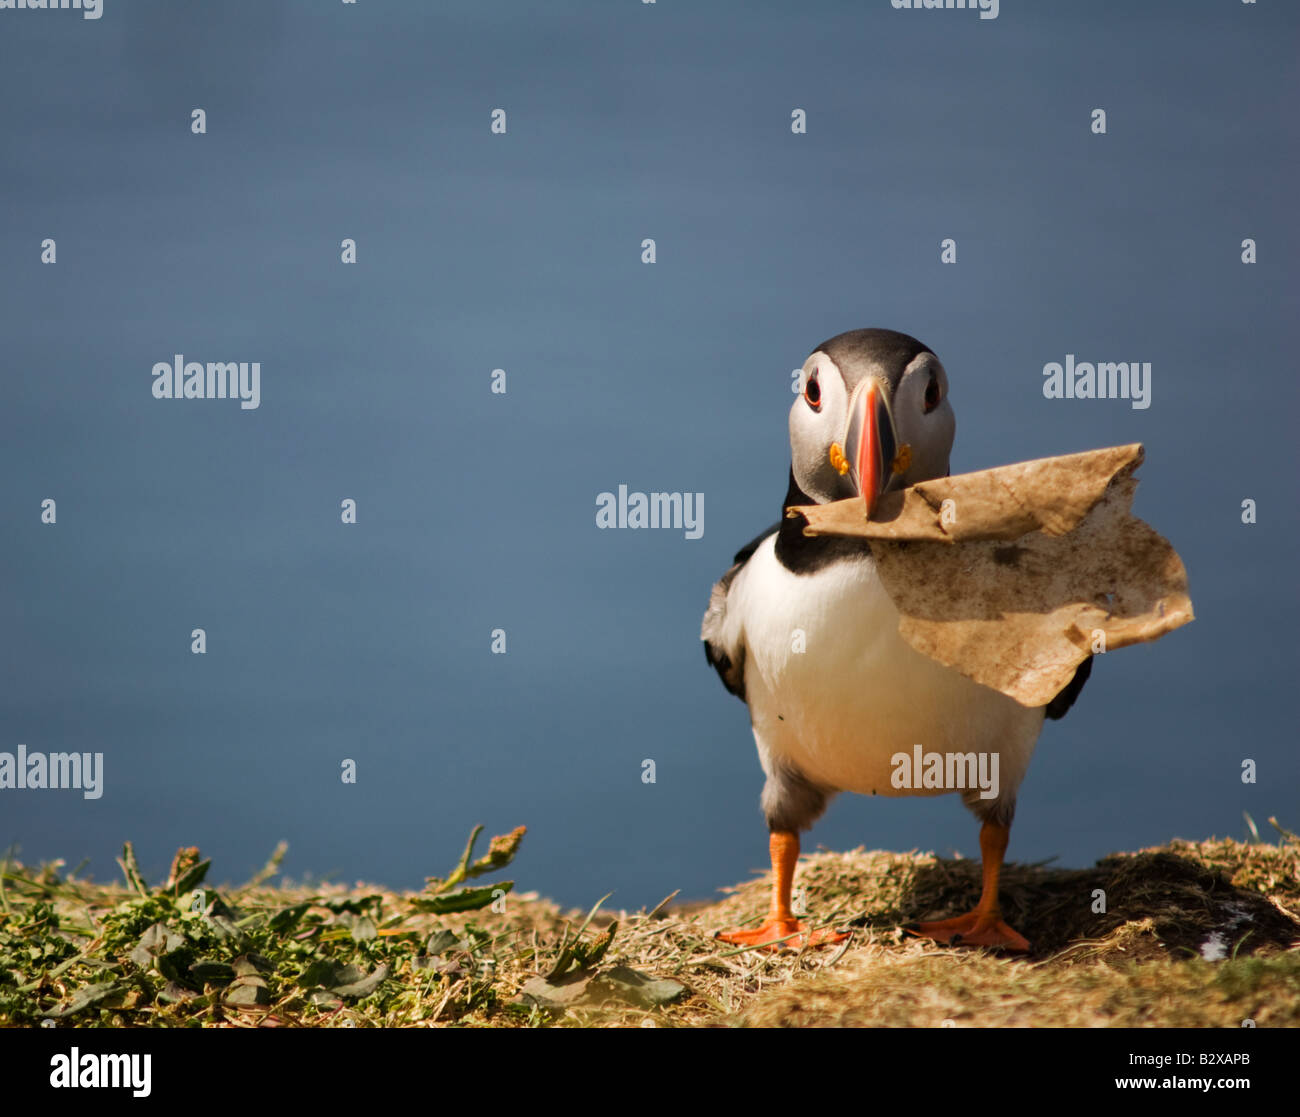 puffing proud of his rubbish - Stock Image